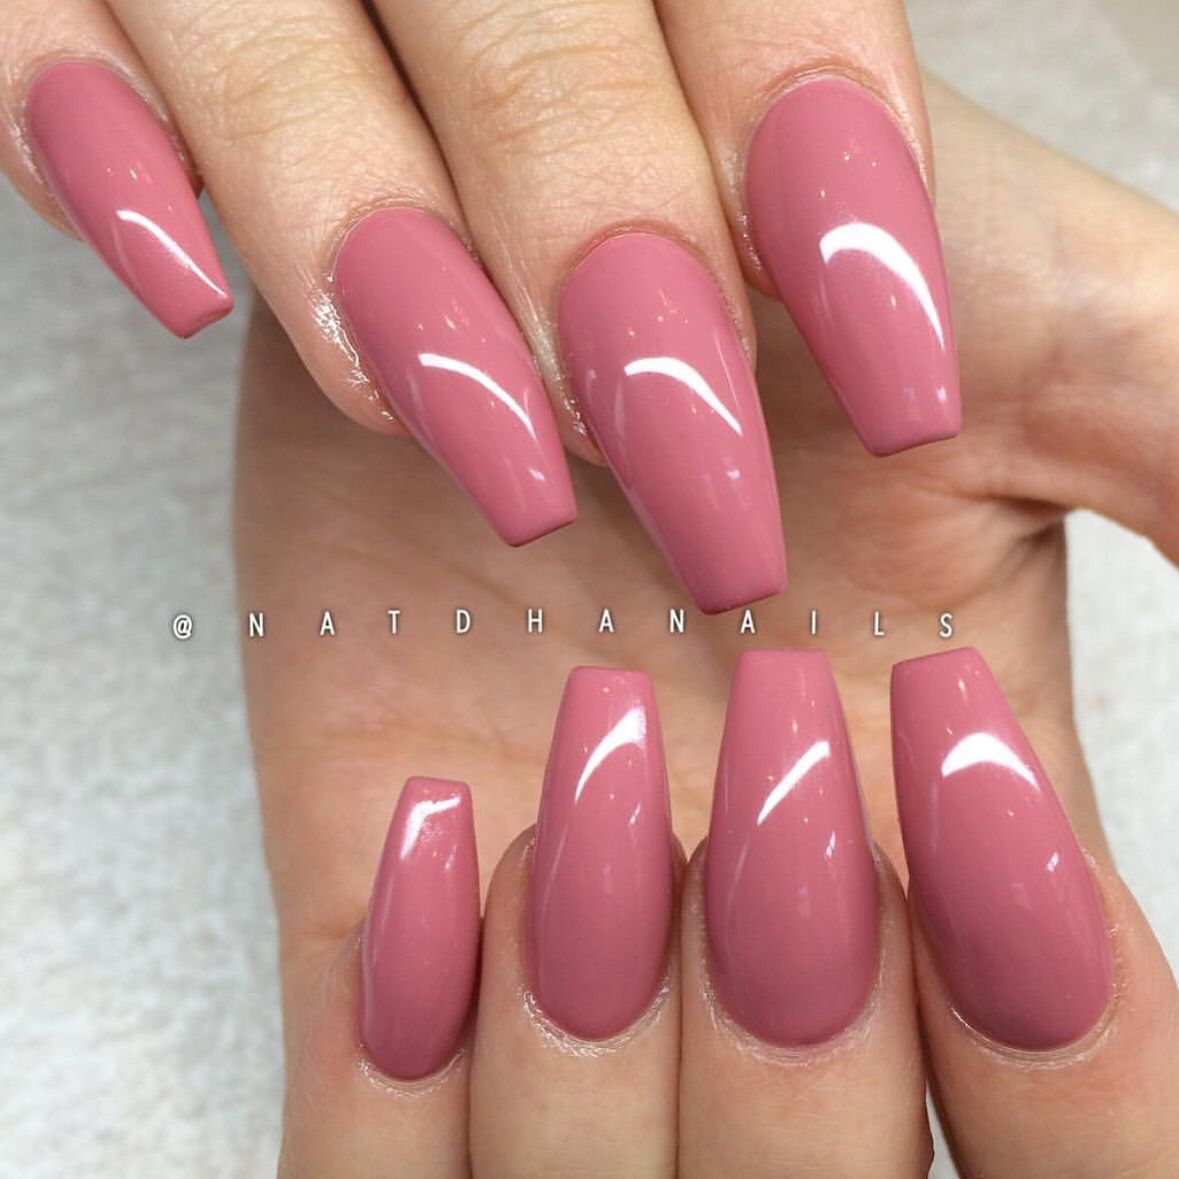 Acrylic Nail Art Rose: Rose Colored Coffin Nails - Stunning!